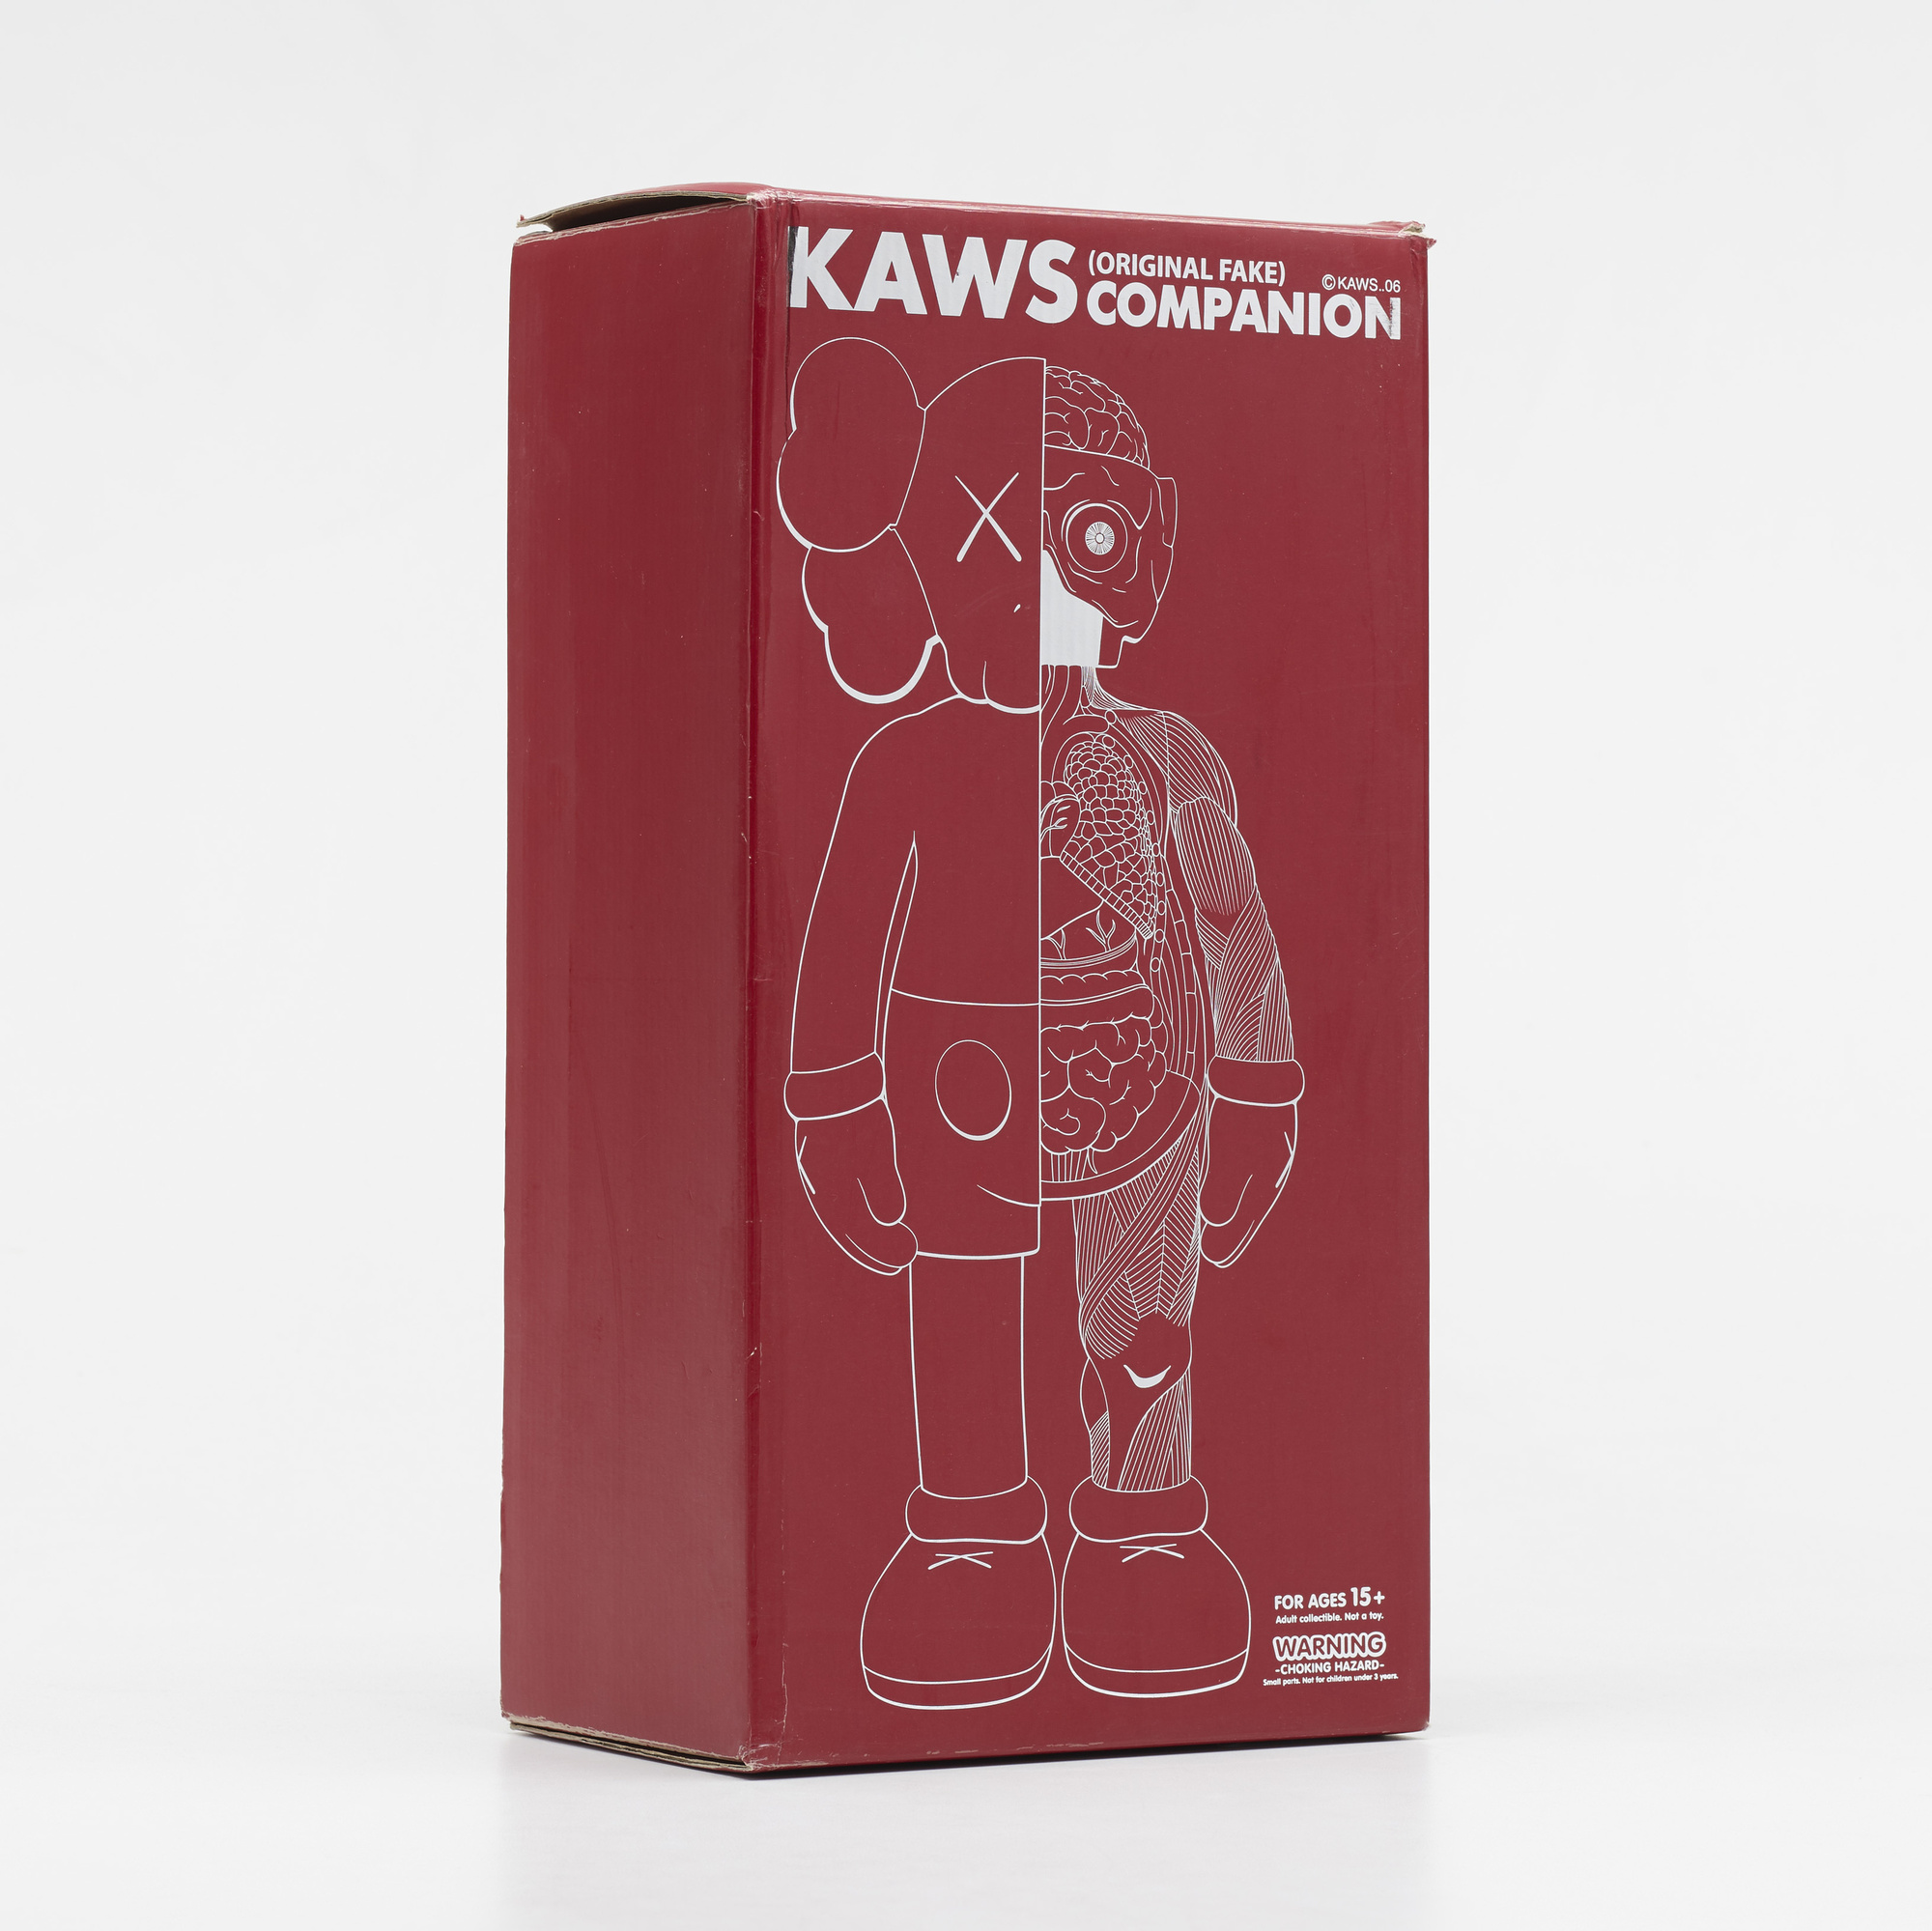 205: KAWS (BRIAN DONNELLY), Companion – Dissected Brown